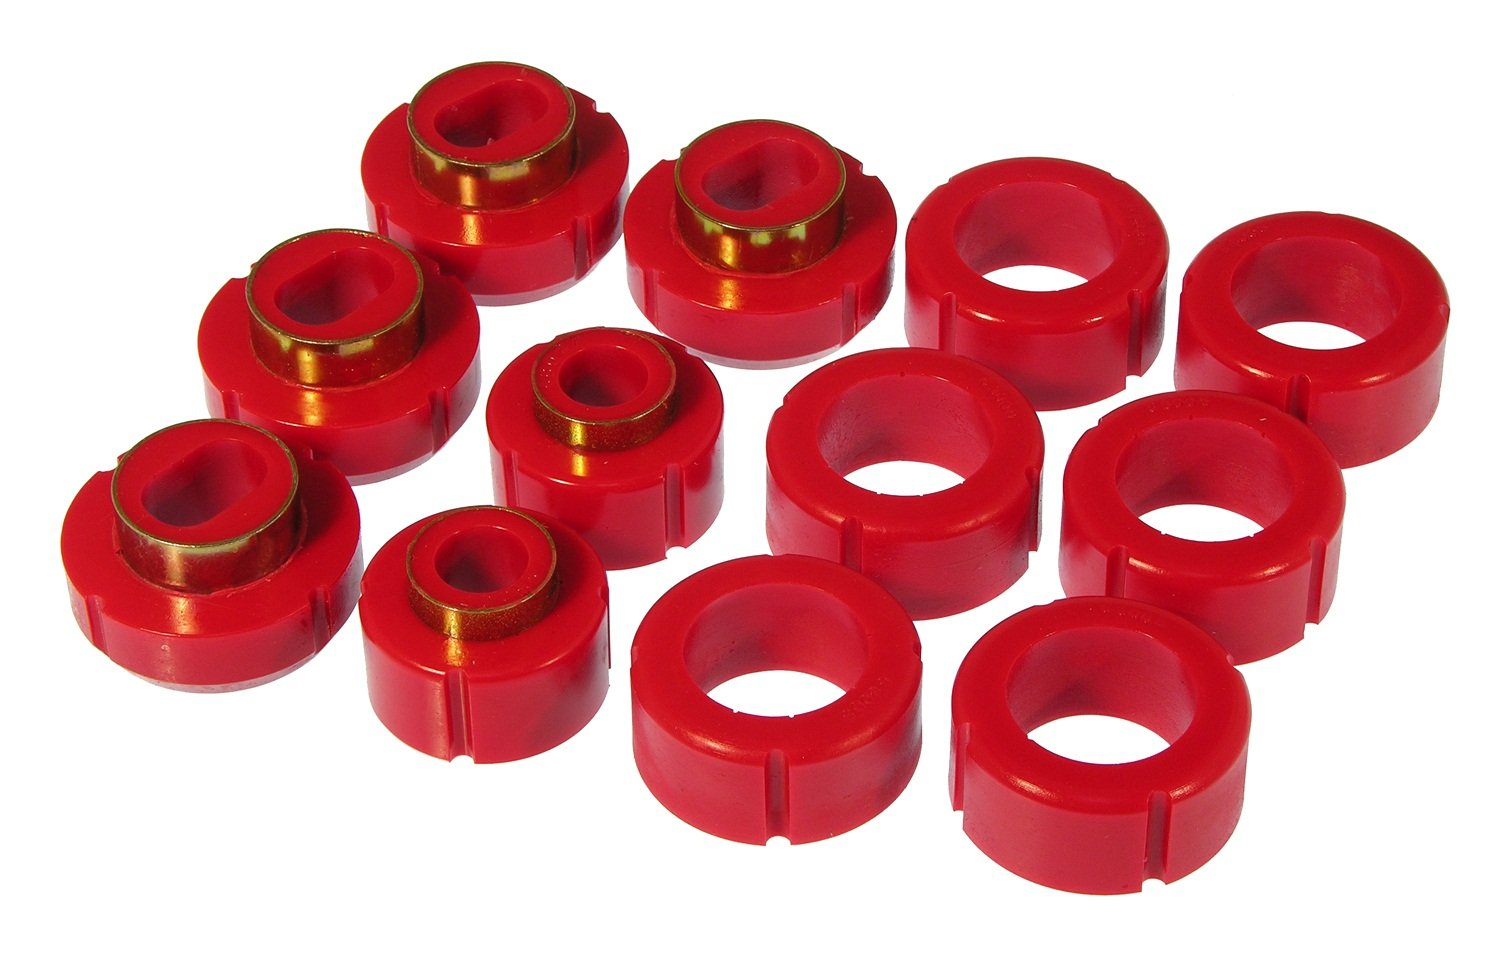 Prothane 7-115 Red Body and Standard Cab Pickup Mount Bushing Kit - 12 Piece by Prothane